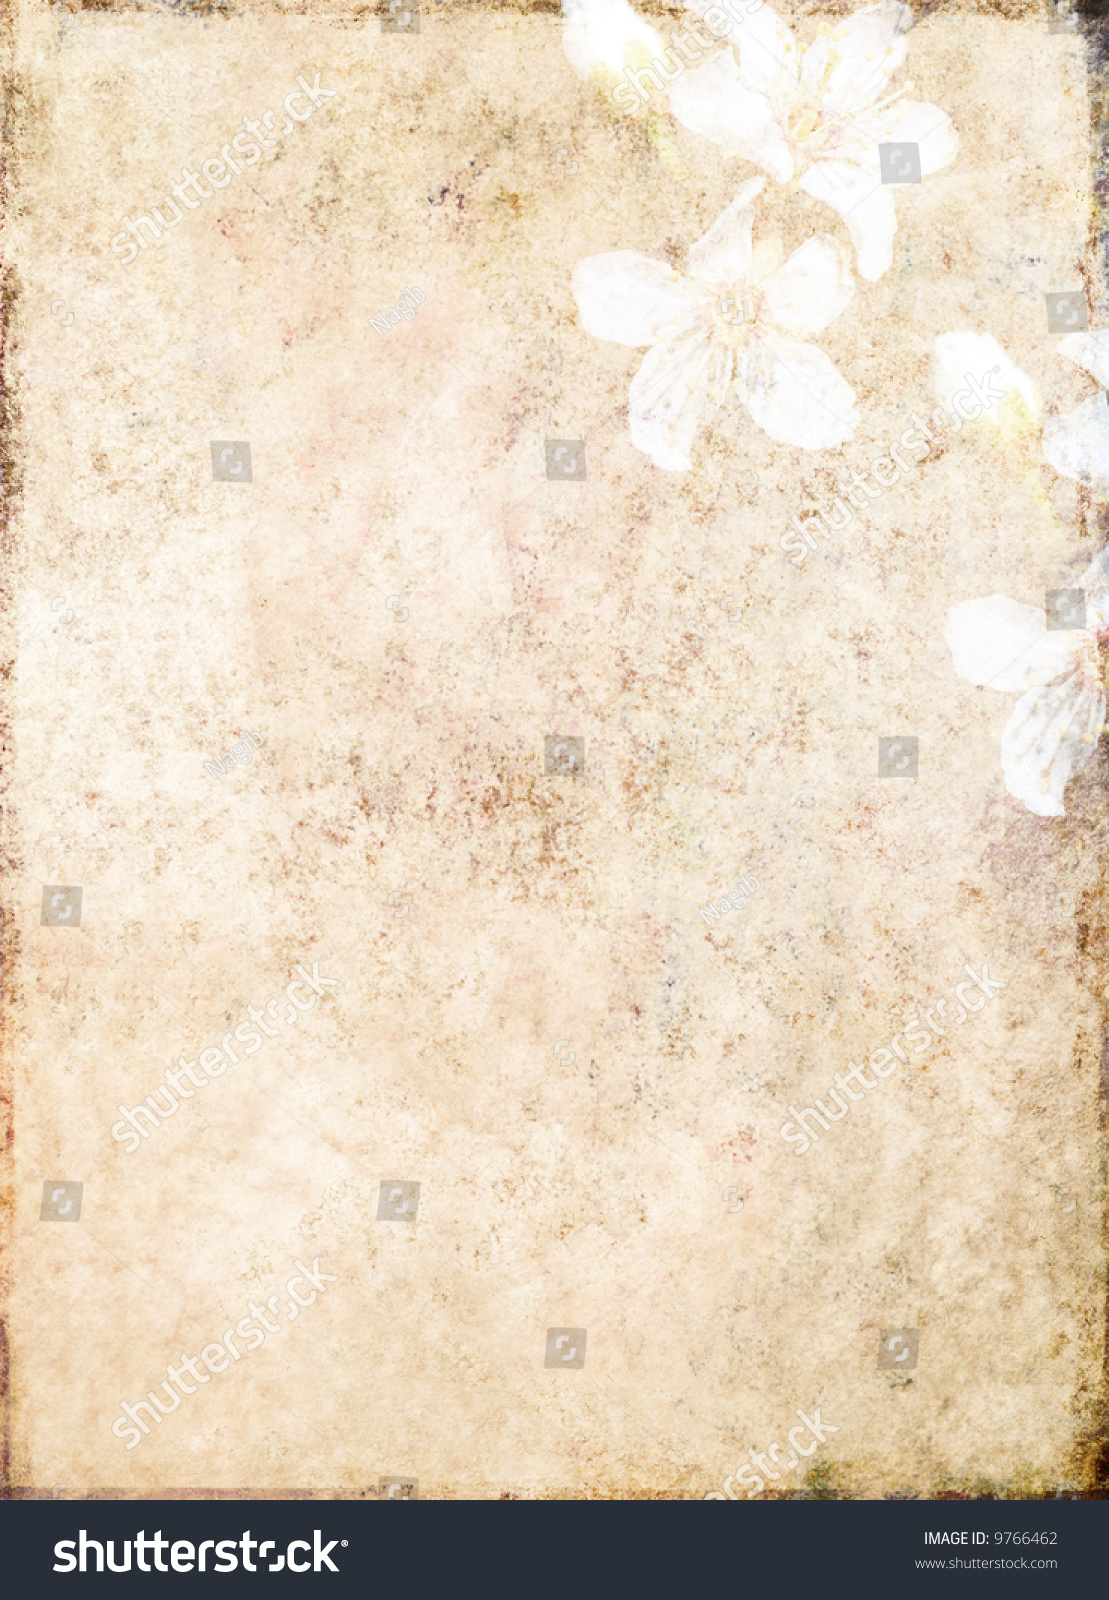 Lovely Light Brown Background Image With Interesting ... - photo#10